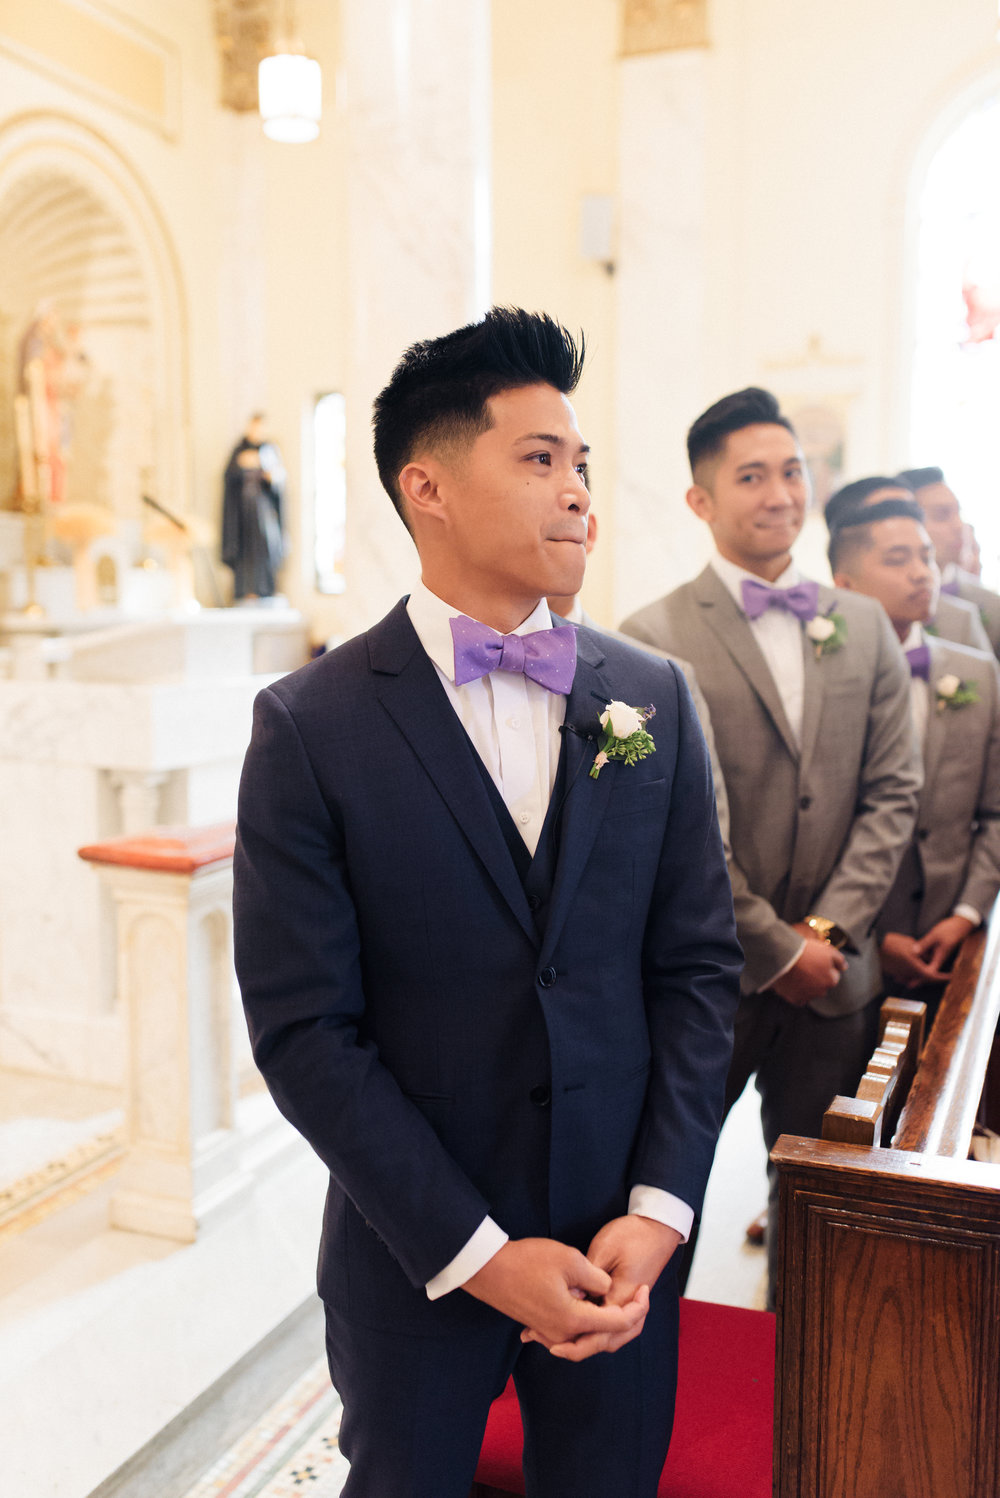 I love how Arvin's groomsmen is watching his face! The sweetest moment while Cassie walked down the aisle.